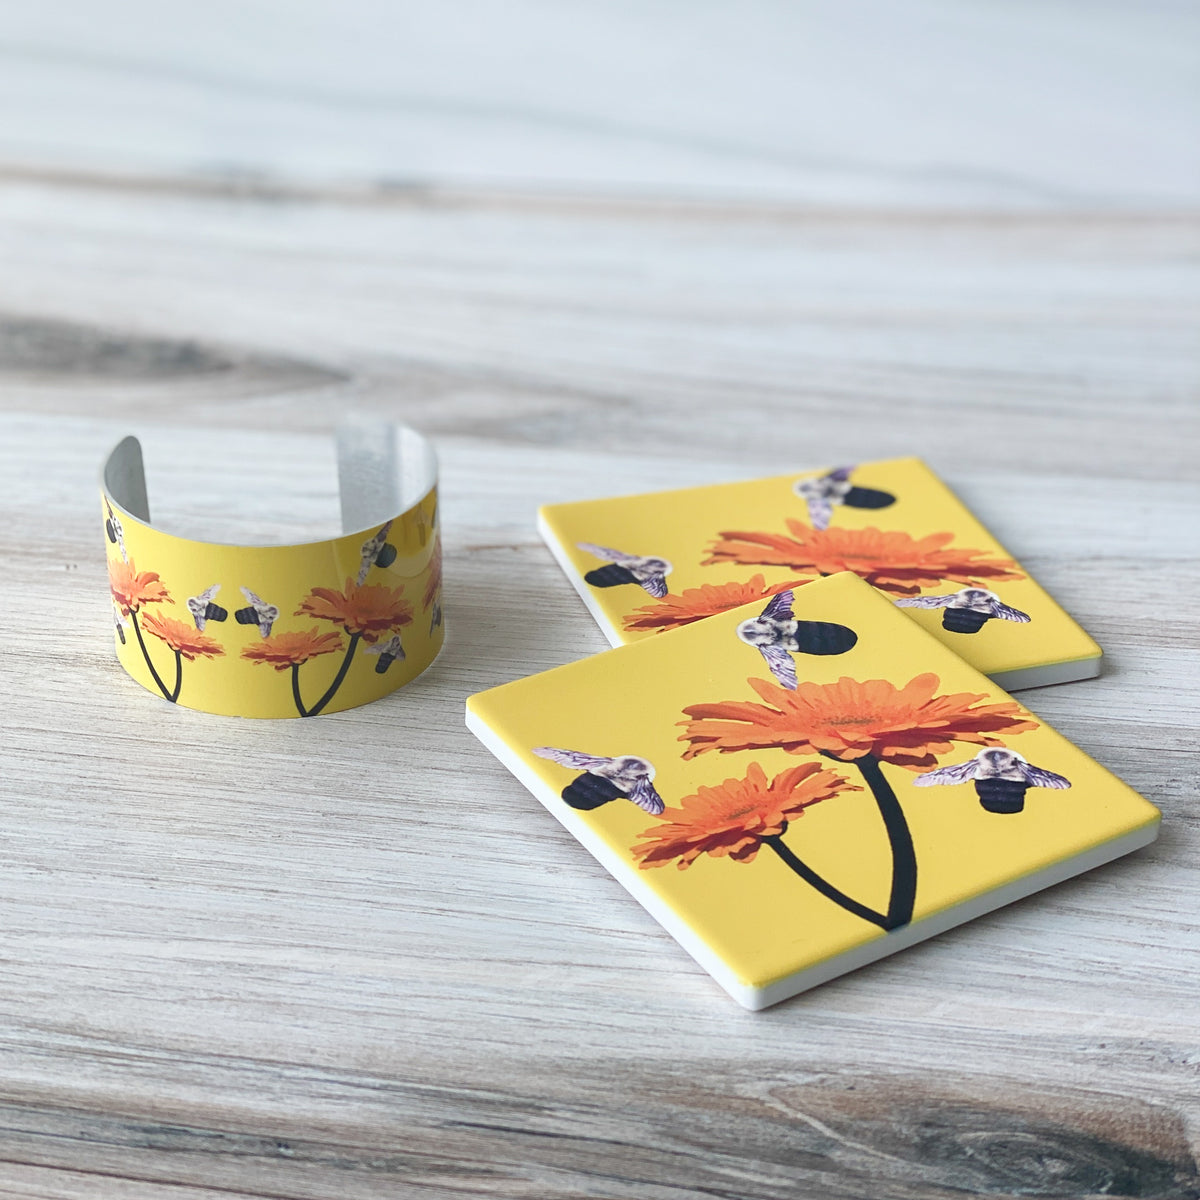 Busy Bee Cuff & matching coasters | Wear the Wonder